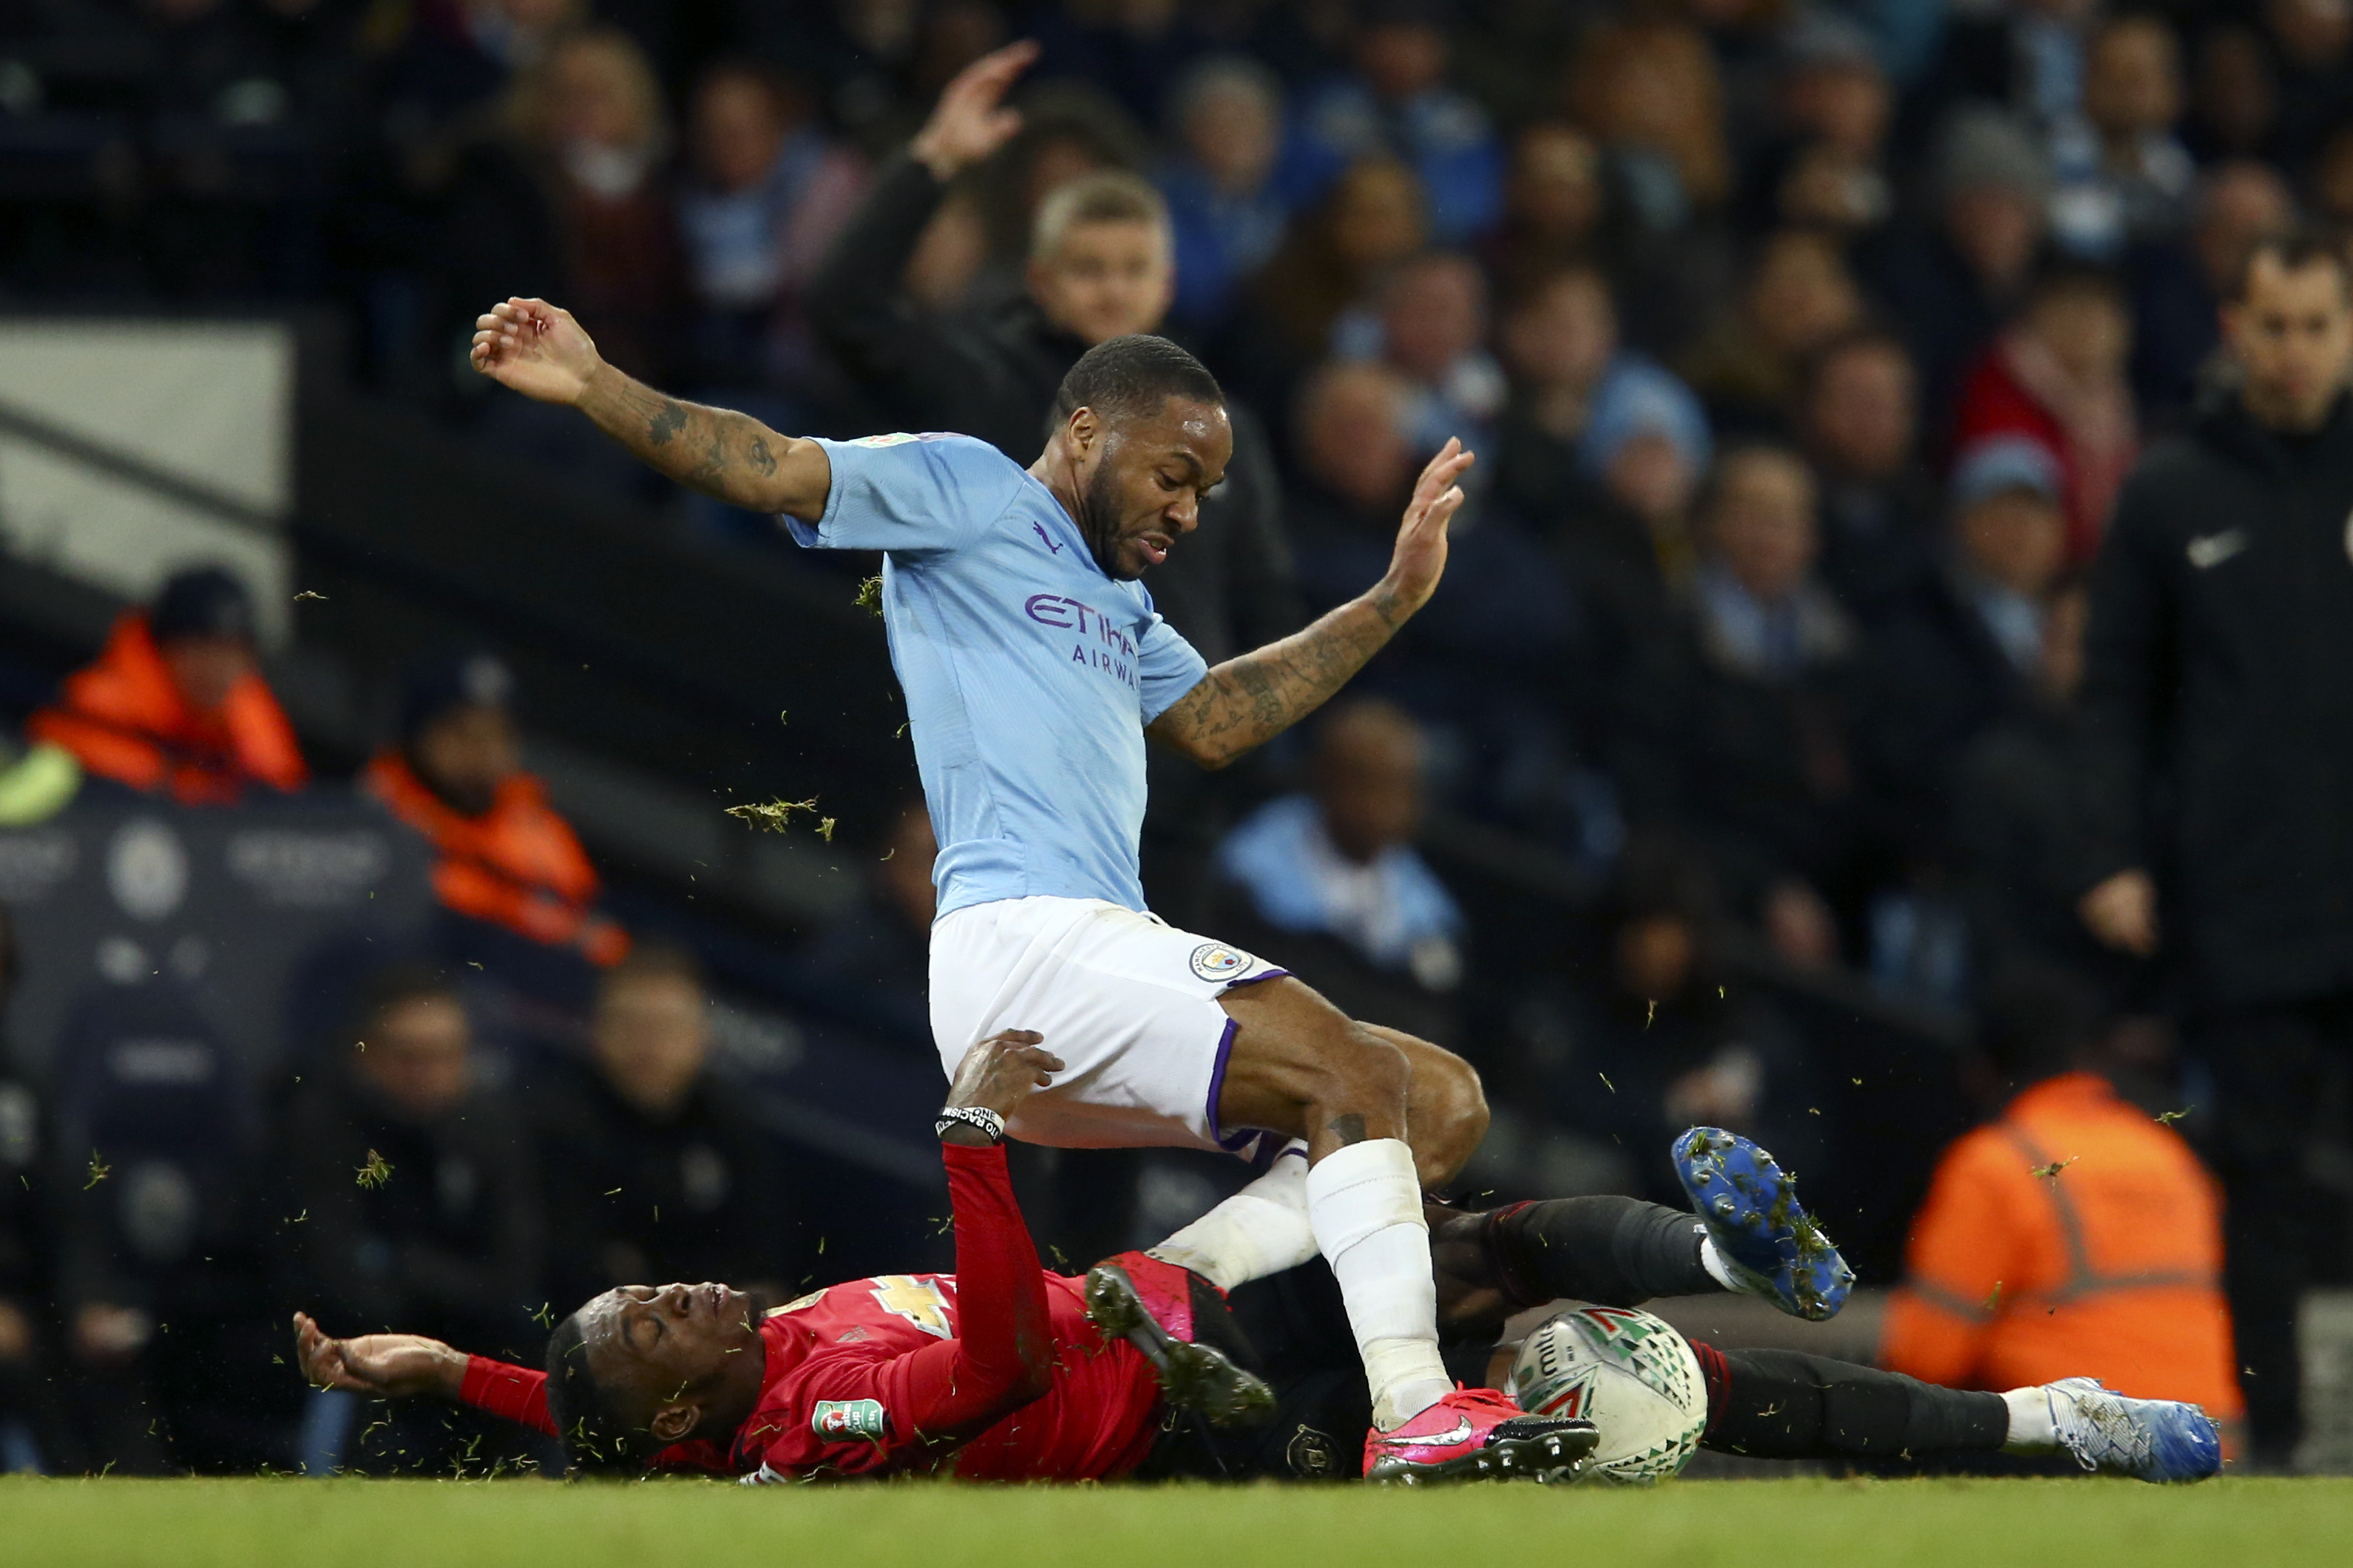 Injury takes struggling Sterling out of firing line